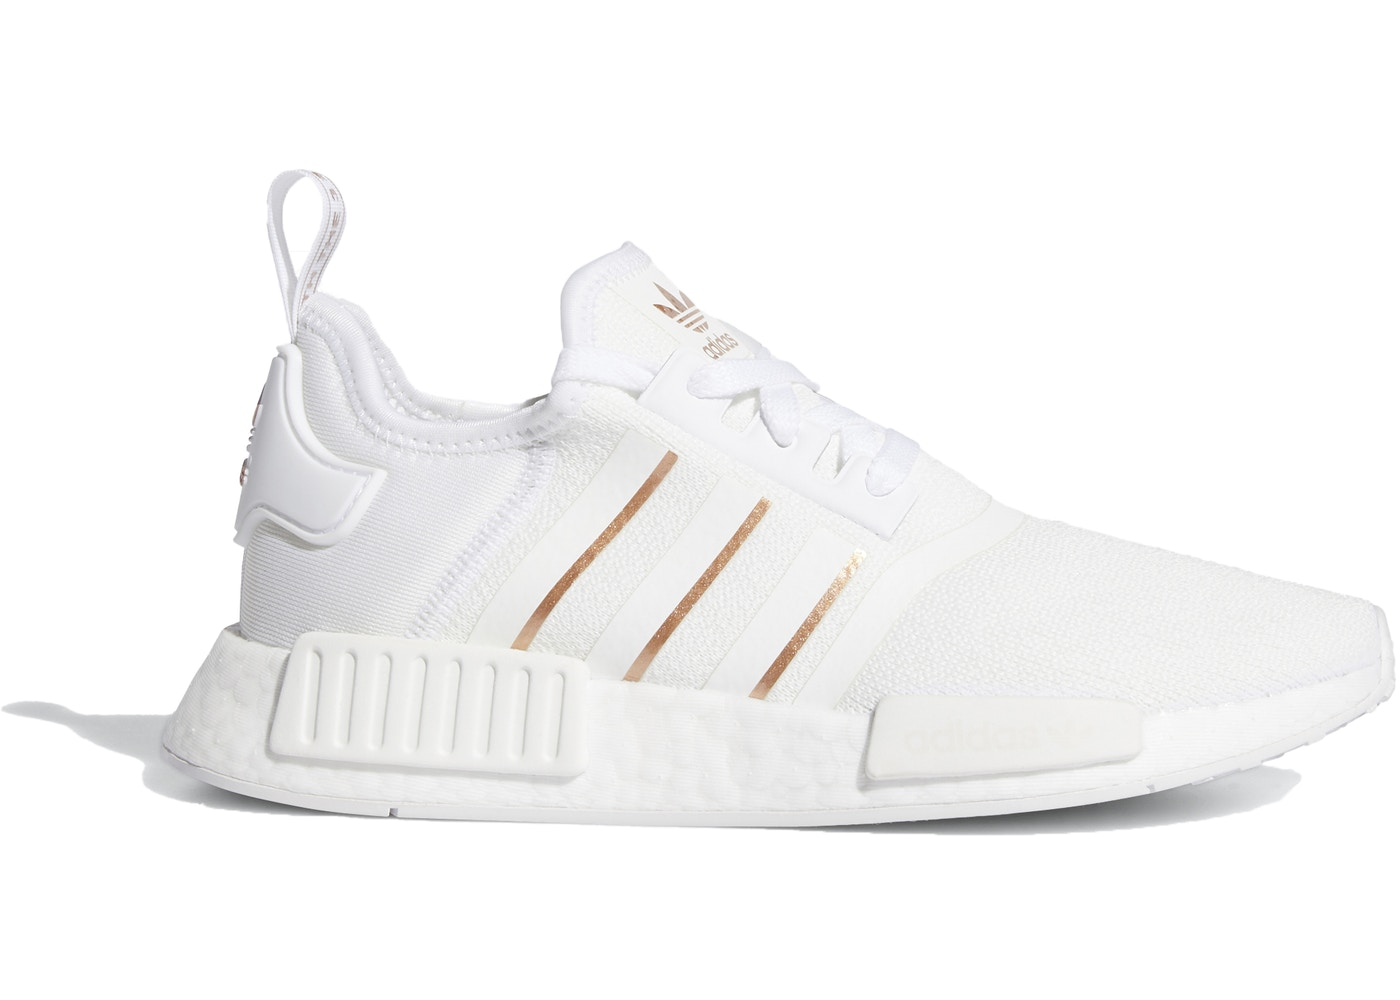 Adidas Nmd R1 Cloud White Rose Gold W Fw6434